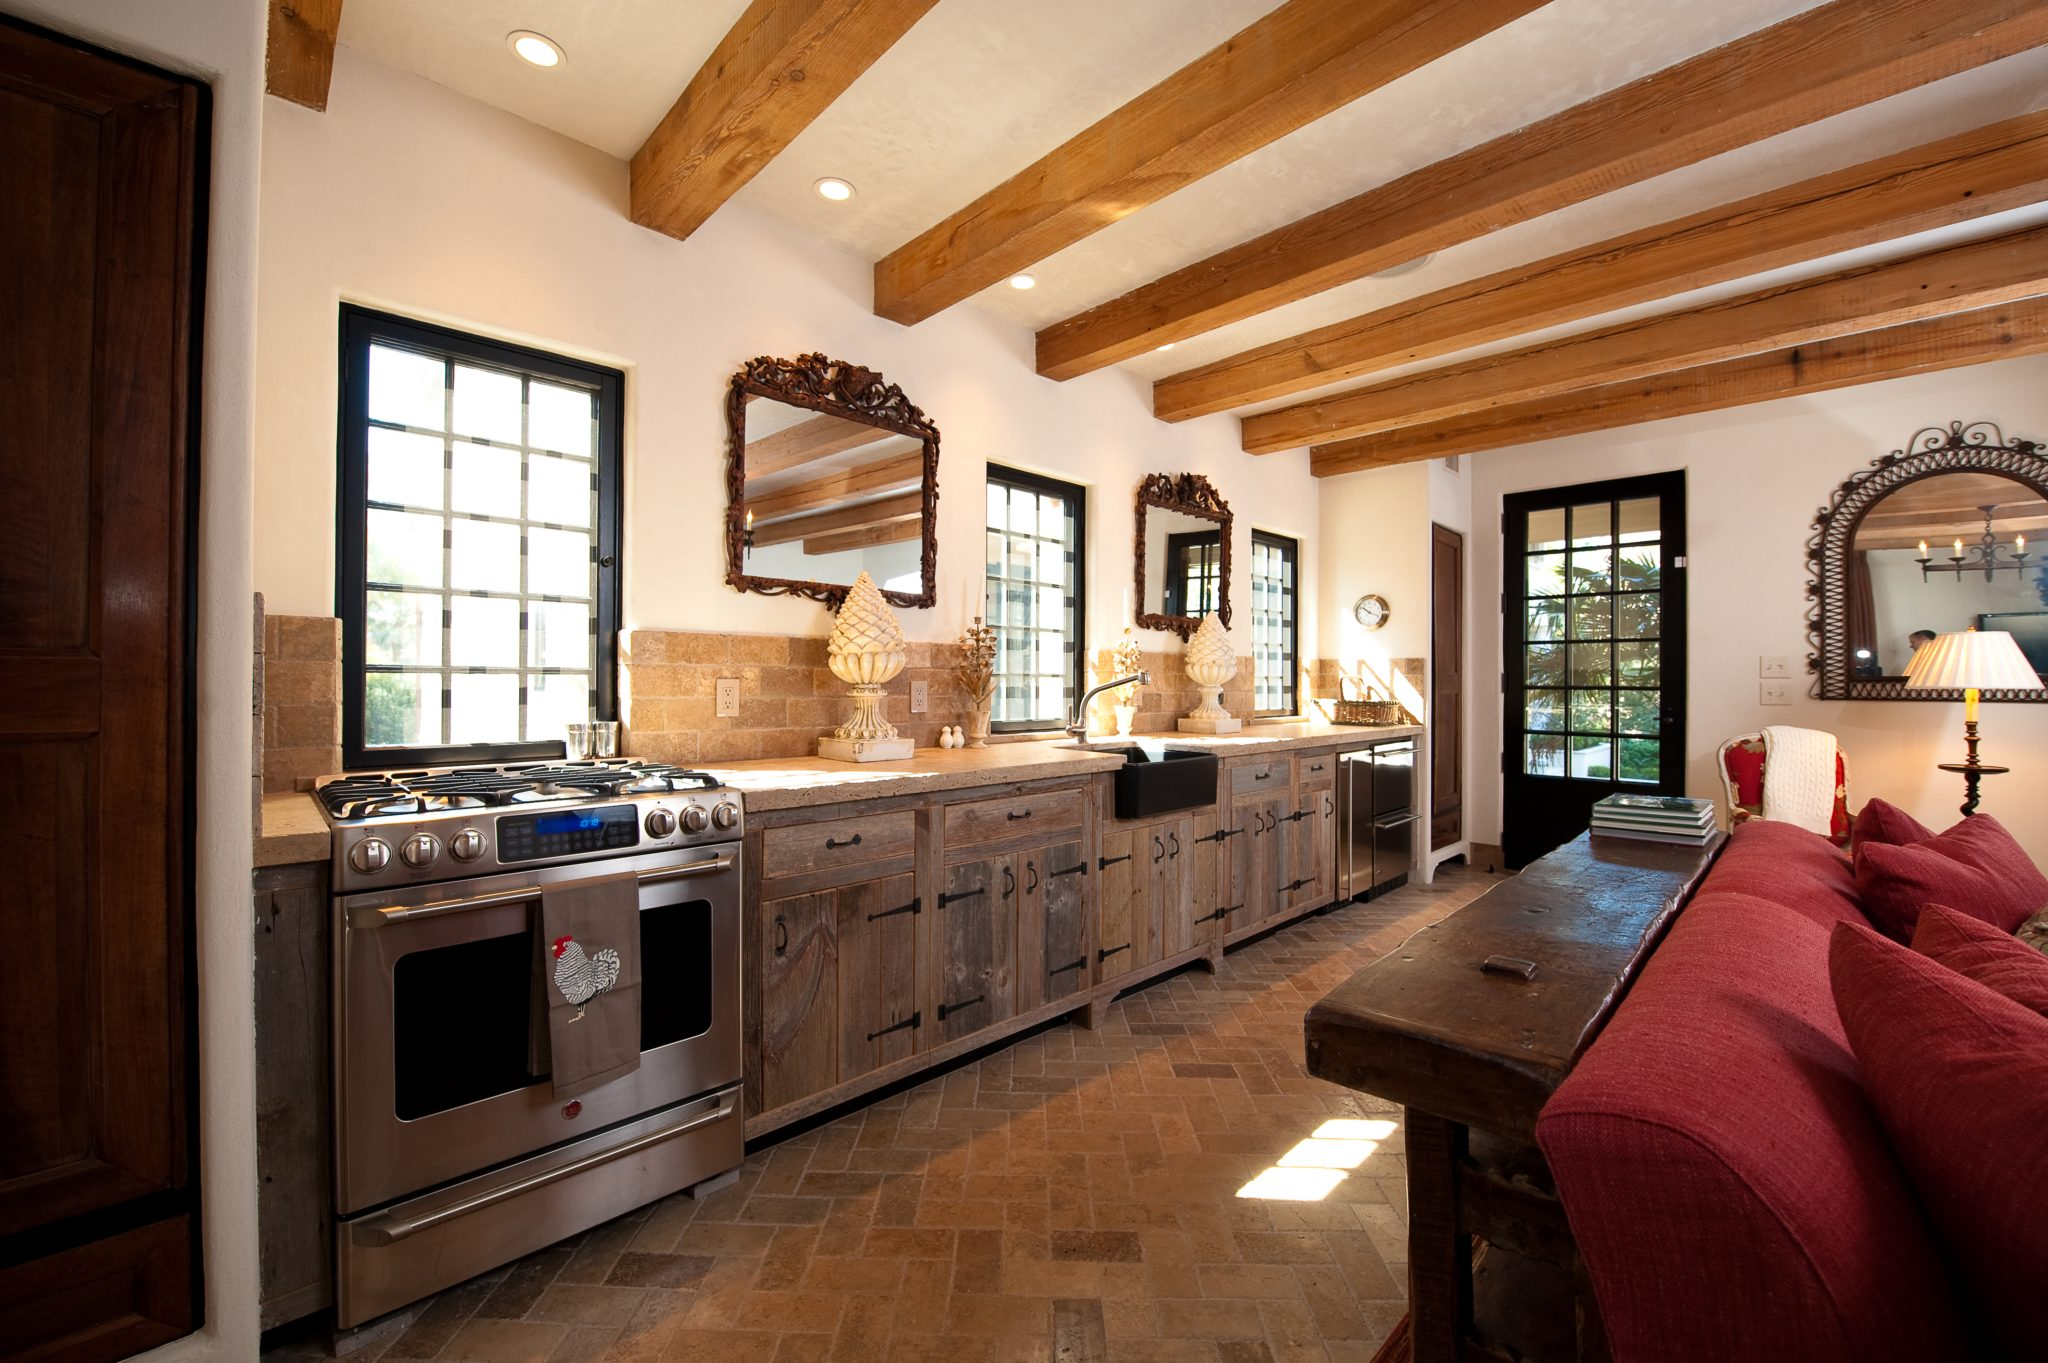 Kitchen with Reclaimed Beams, Barn Board Cabinets and Herringbone Stone Floor by Island Architects